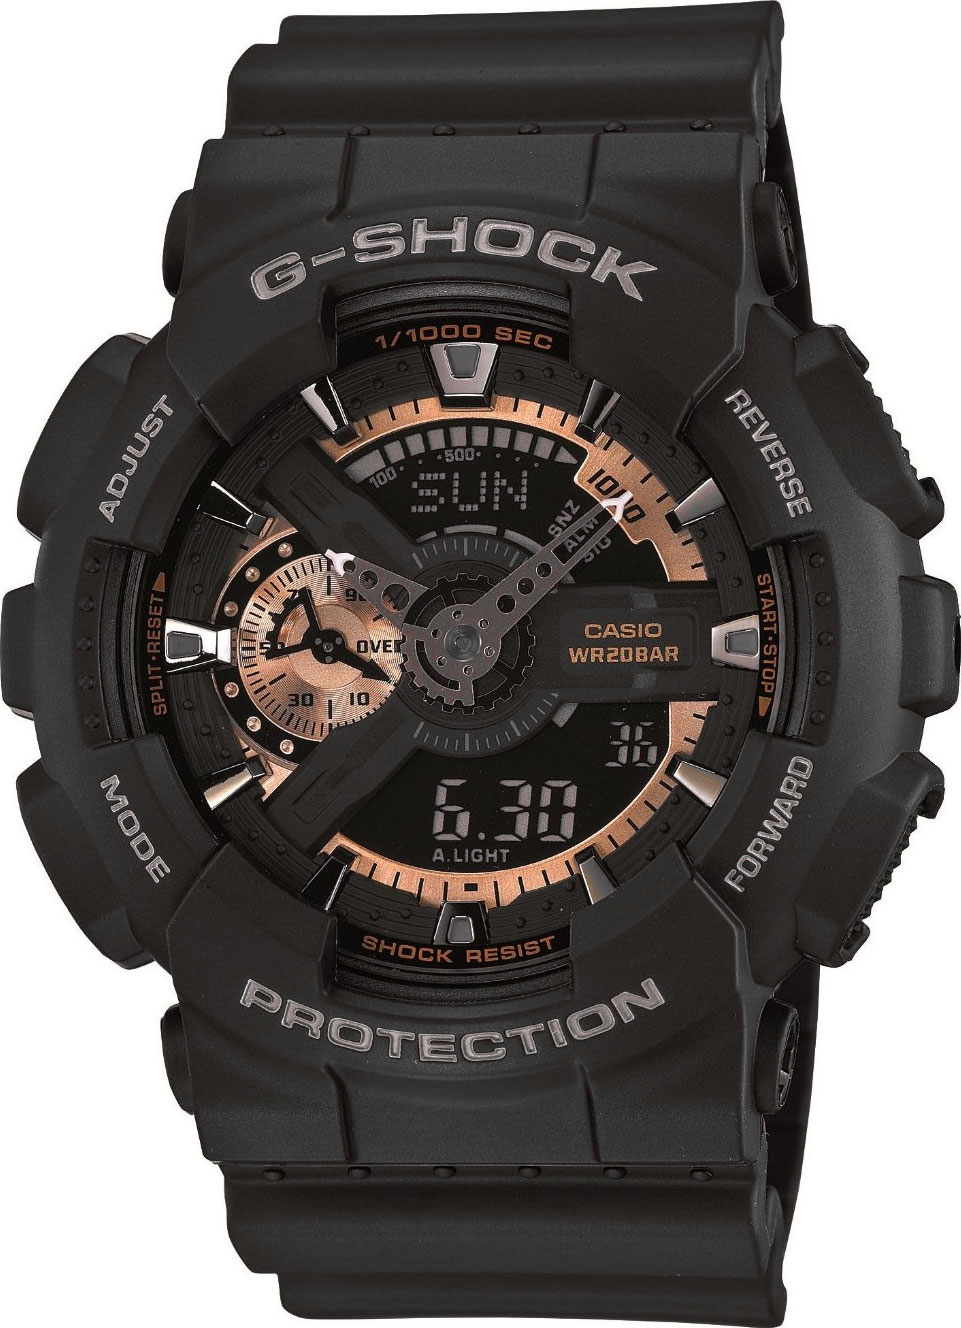 Casio G-shock GA-110RG-1A часы casio g shock ga 110mb 1a black